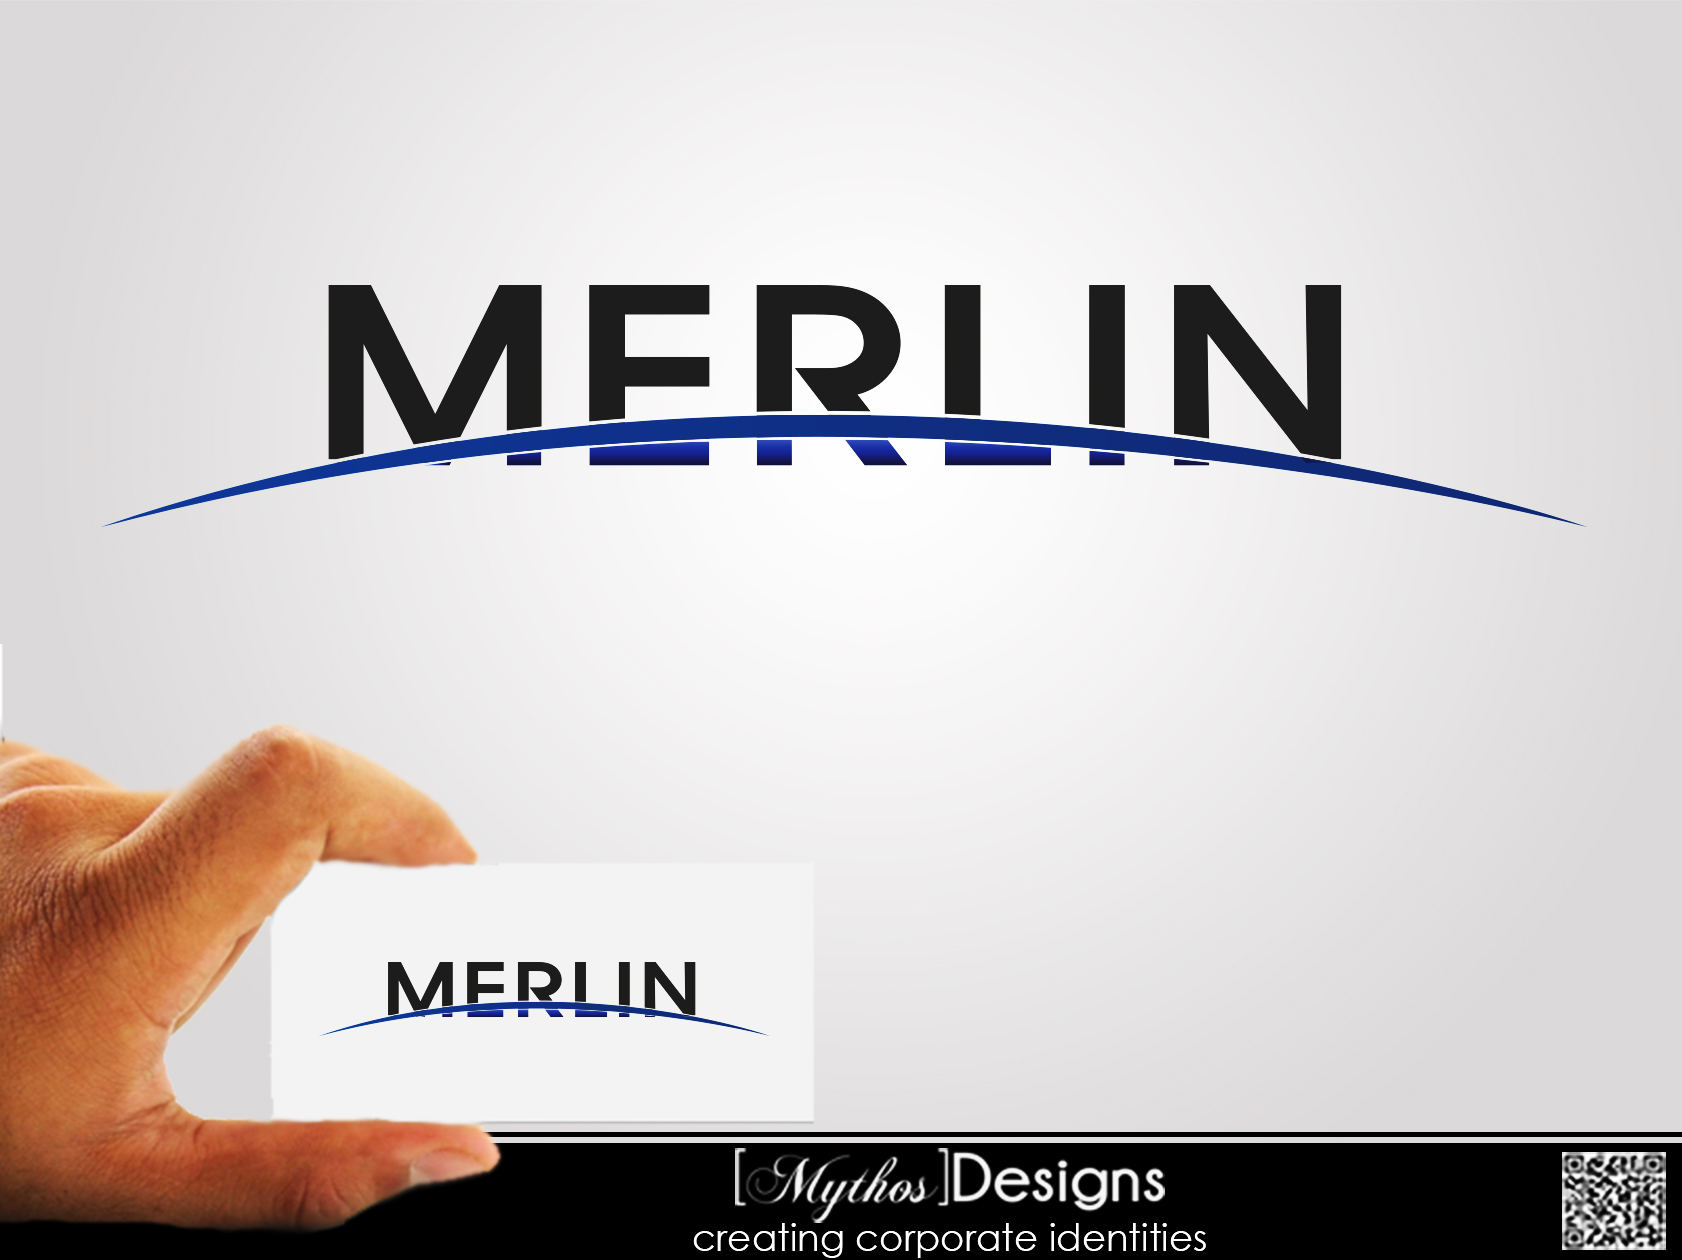 Logo Design by Mythos Designs - Entry No. 90 in the Logo Design Contest Imaginative Logo Design for Merlin.